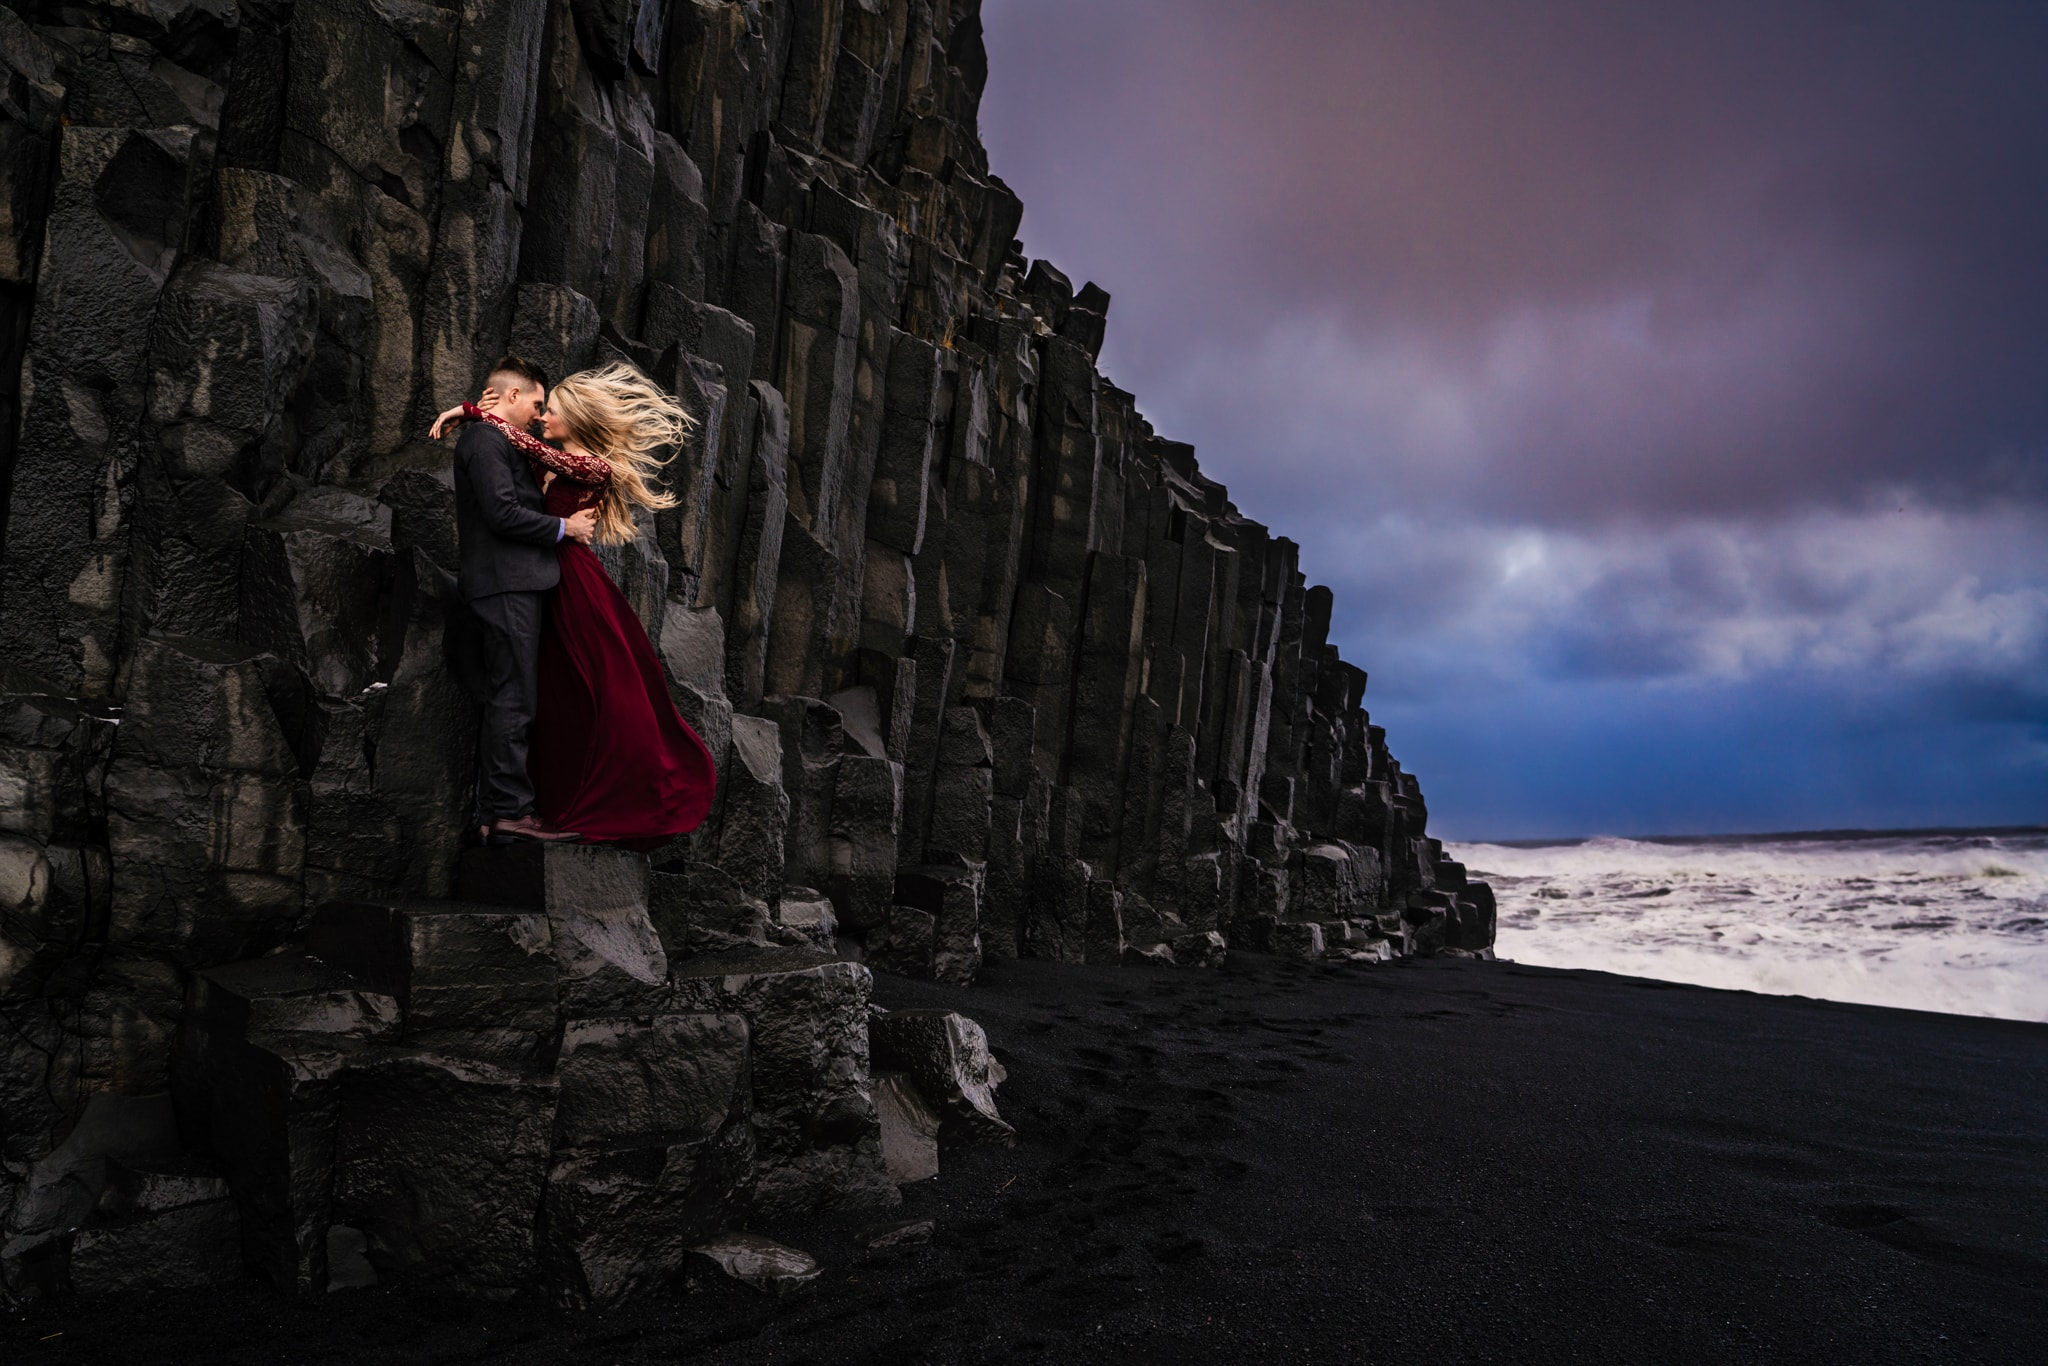 Studio 22 Photography - Engagement Photos in Iceland